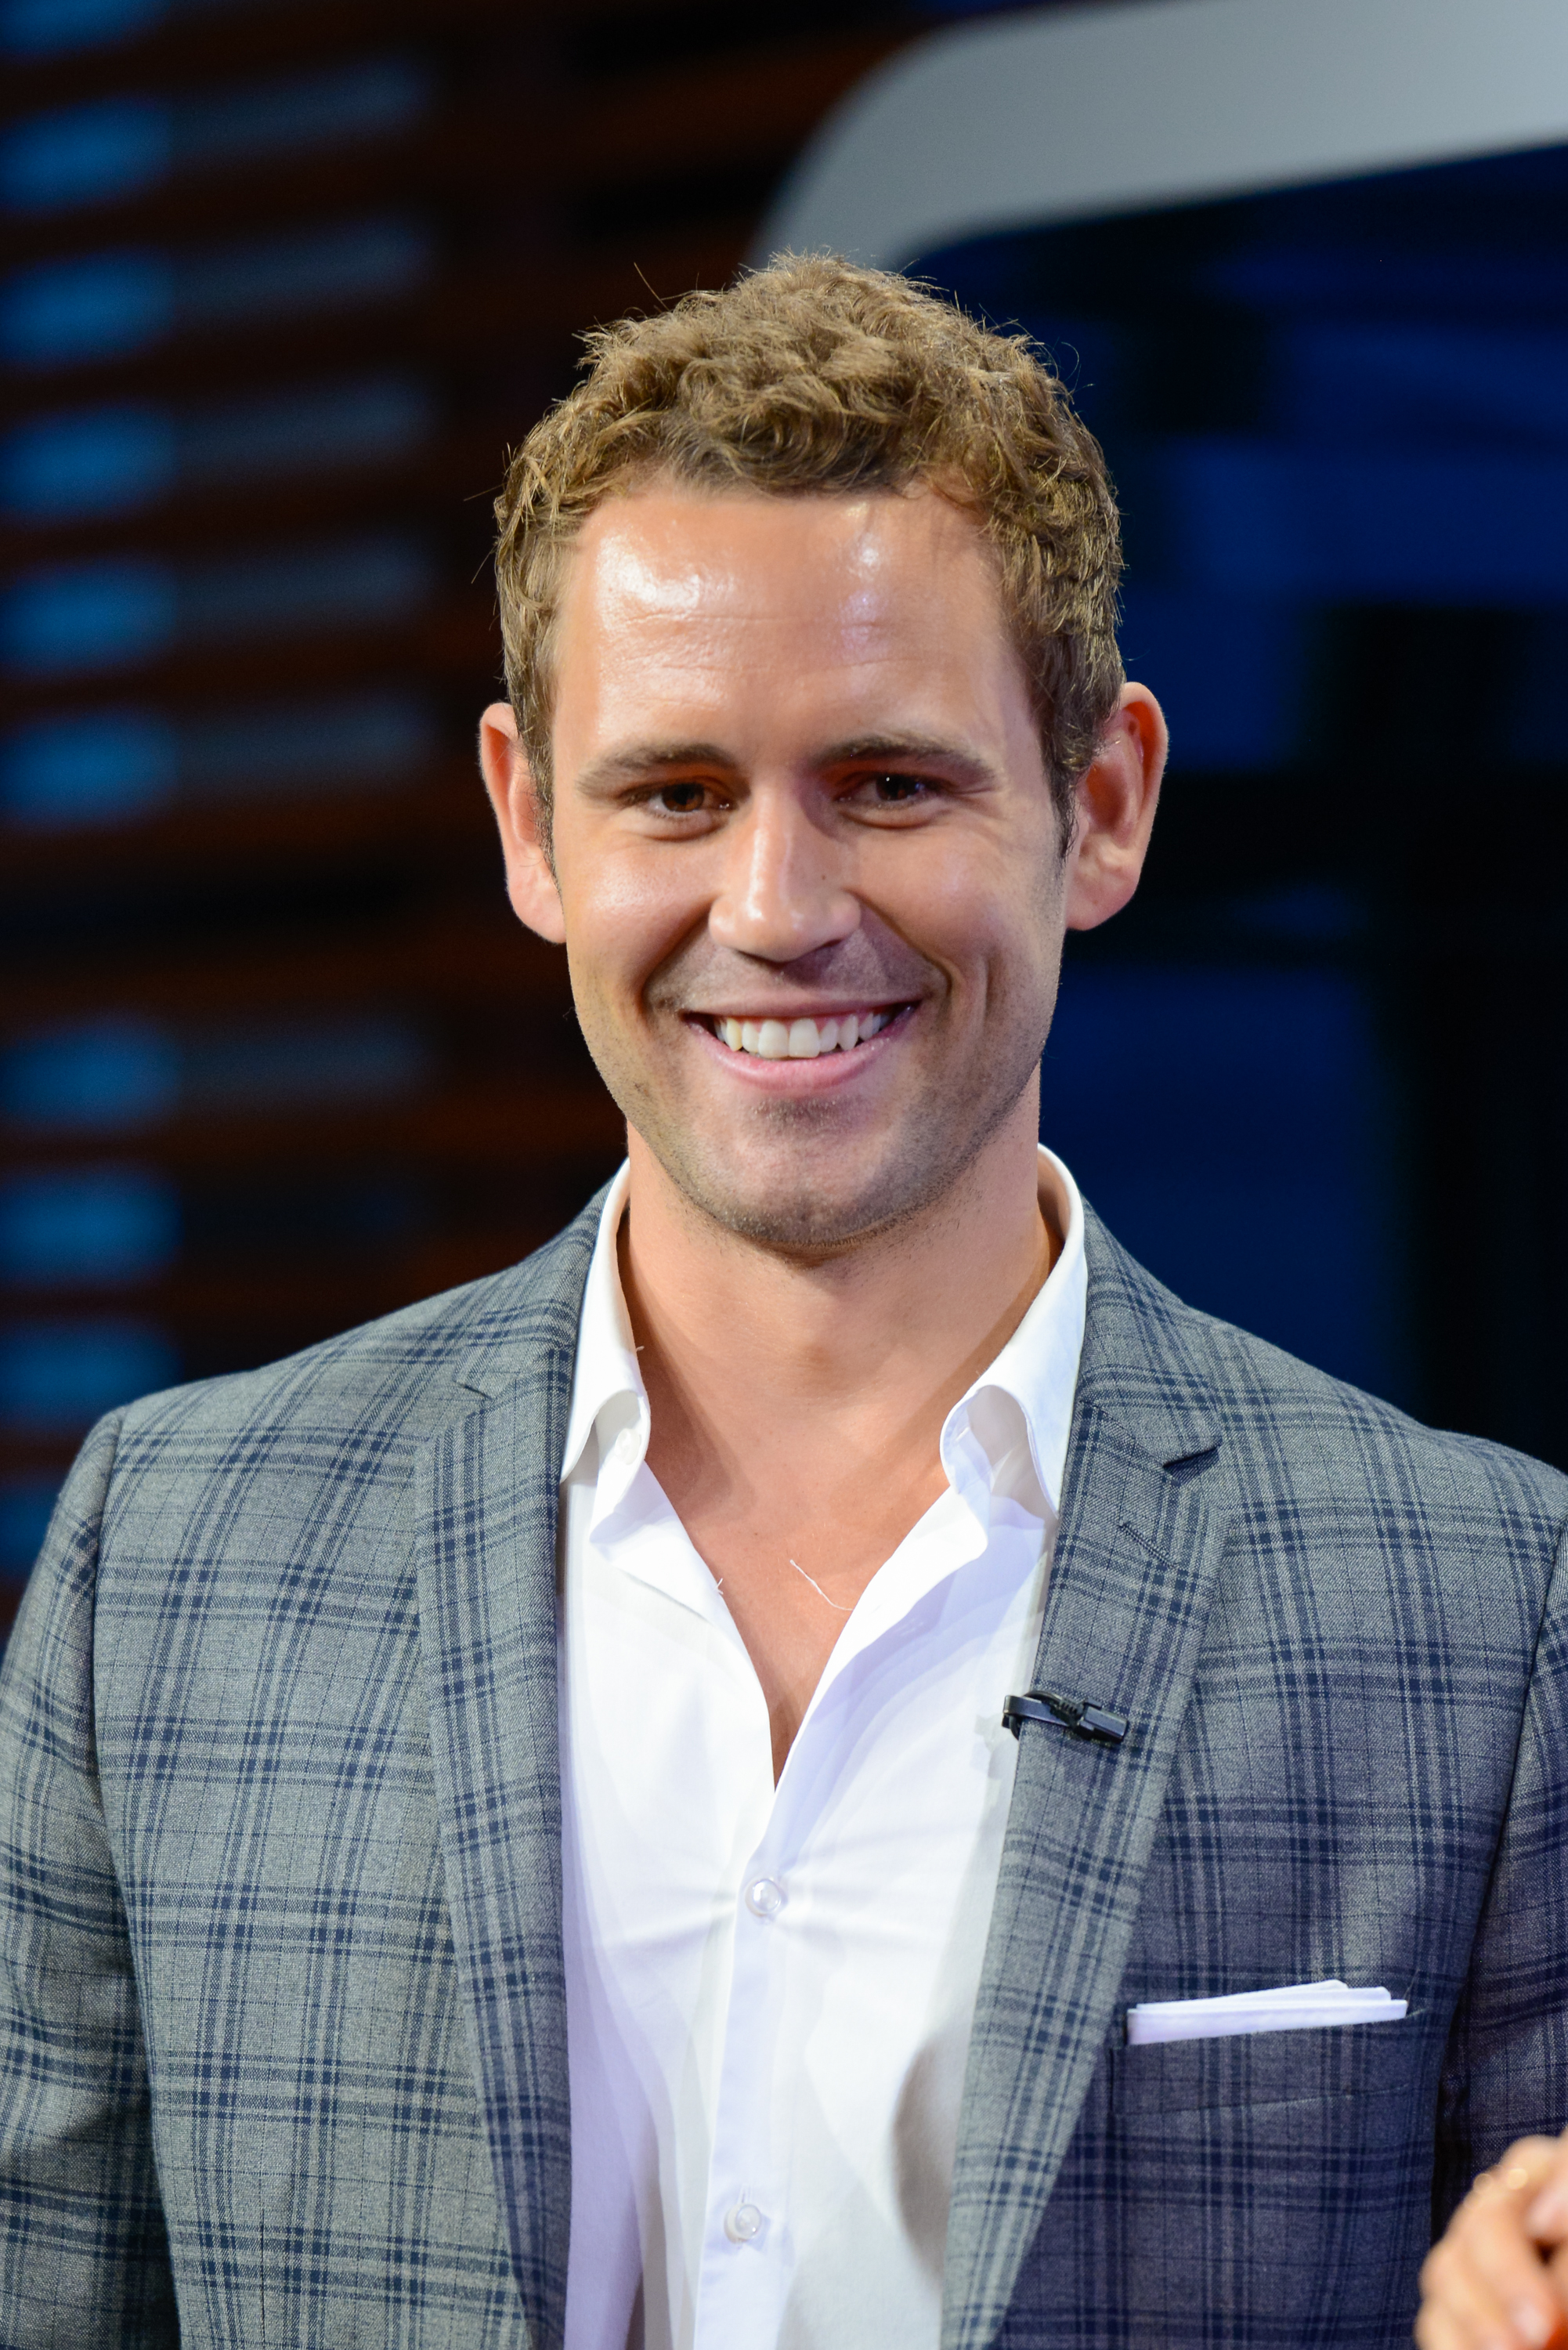 UNIVERSAL CITY, CA - JULY 30:  Nick Viall visits  Extra  at Universal Studios Hollywood on July 30, 2014 in Universal City, California.  (Photo by Noel Vasquez/Getty Images)